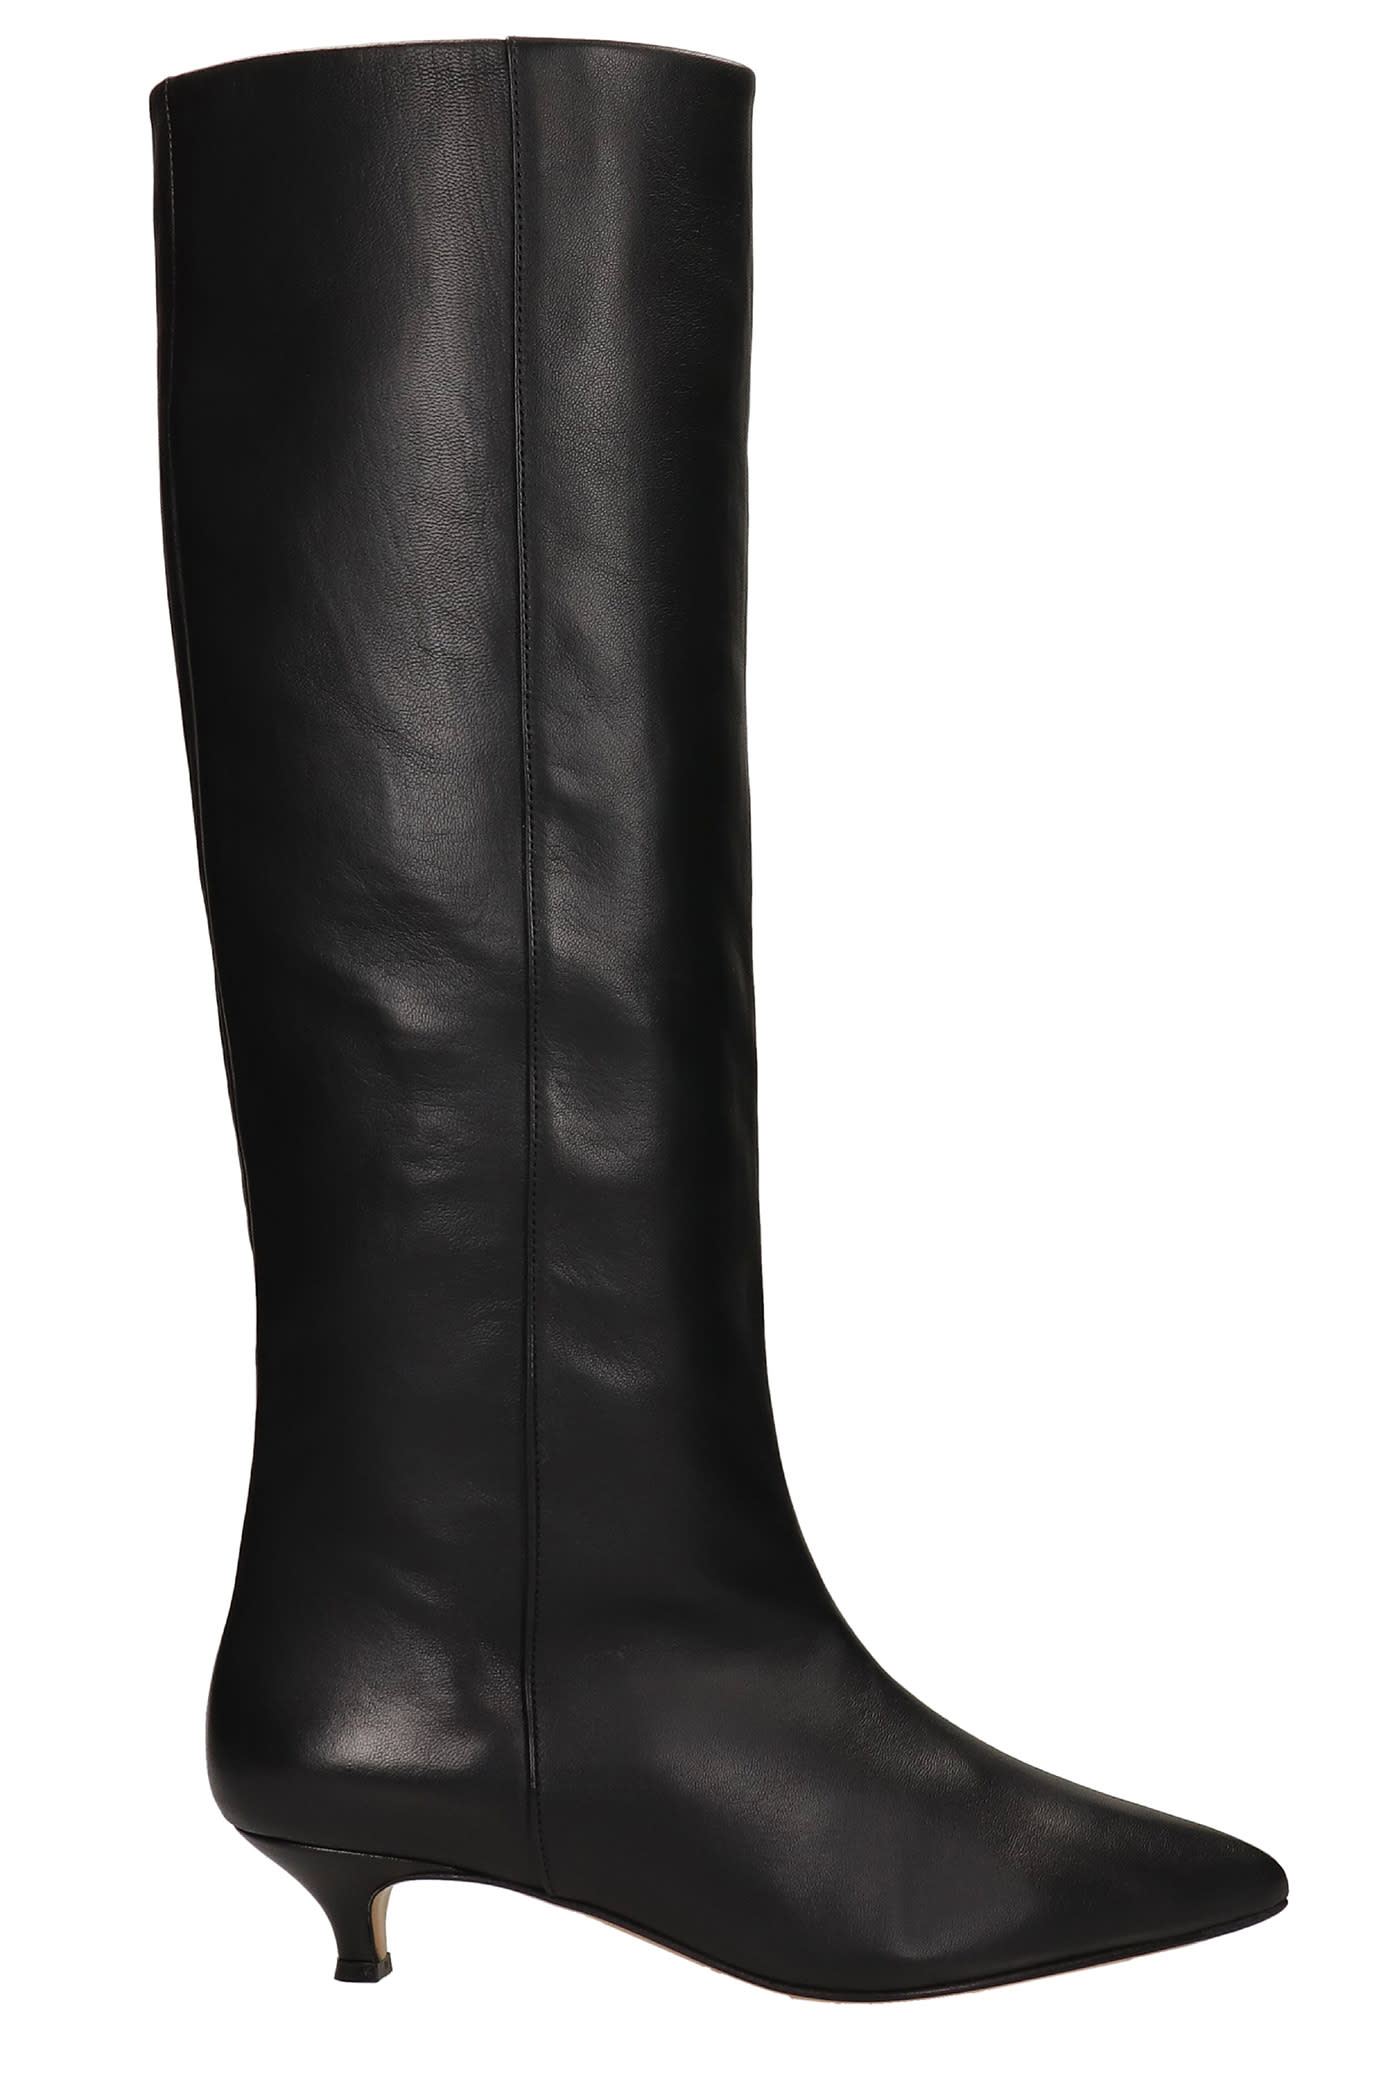 Low Heels Boots In Black Leather